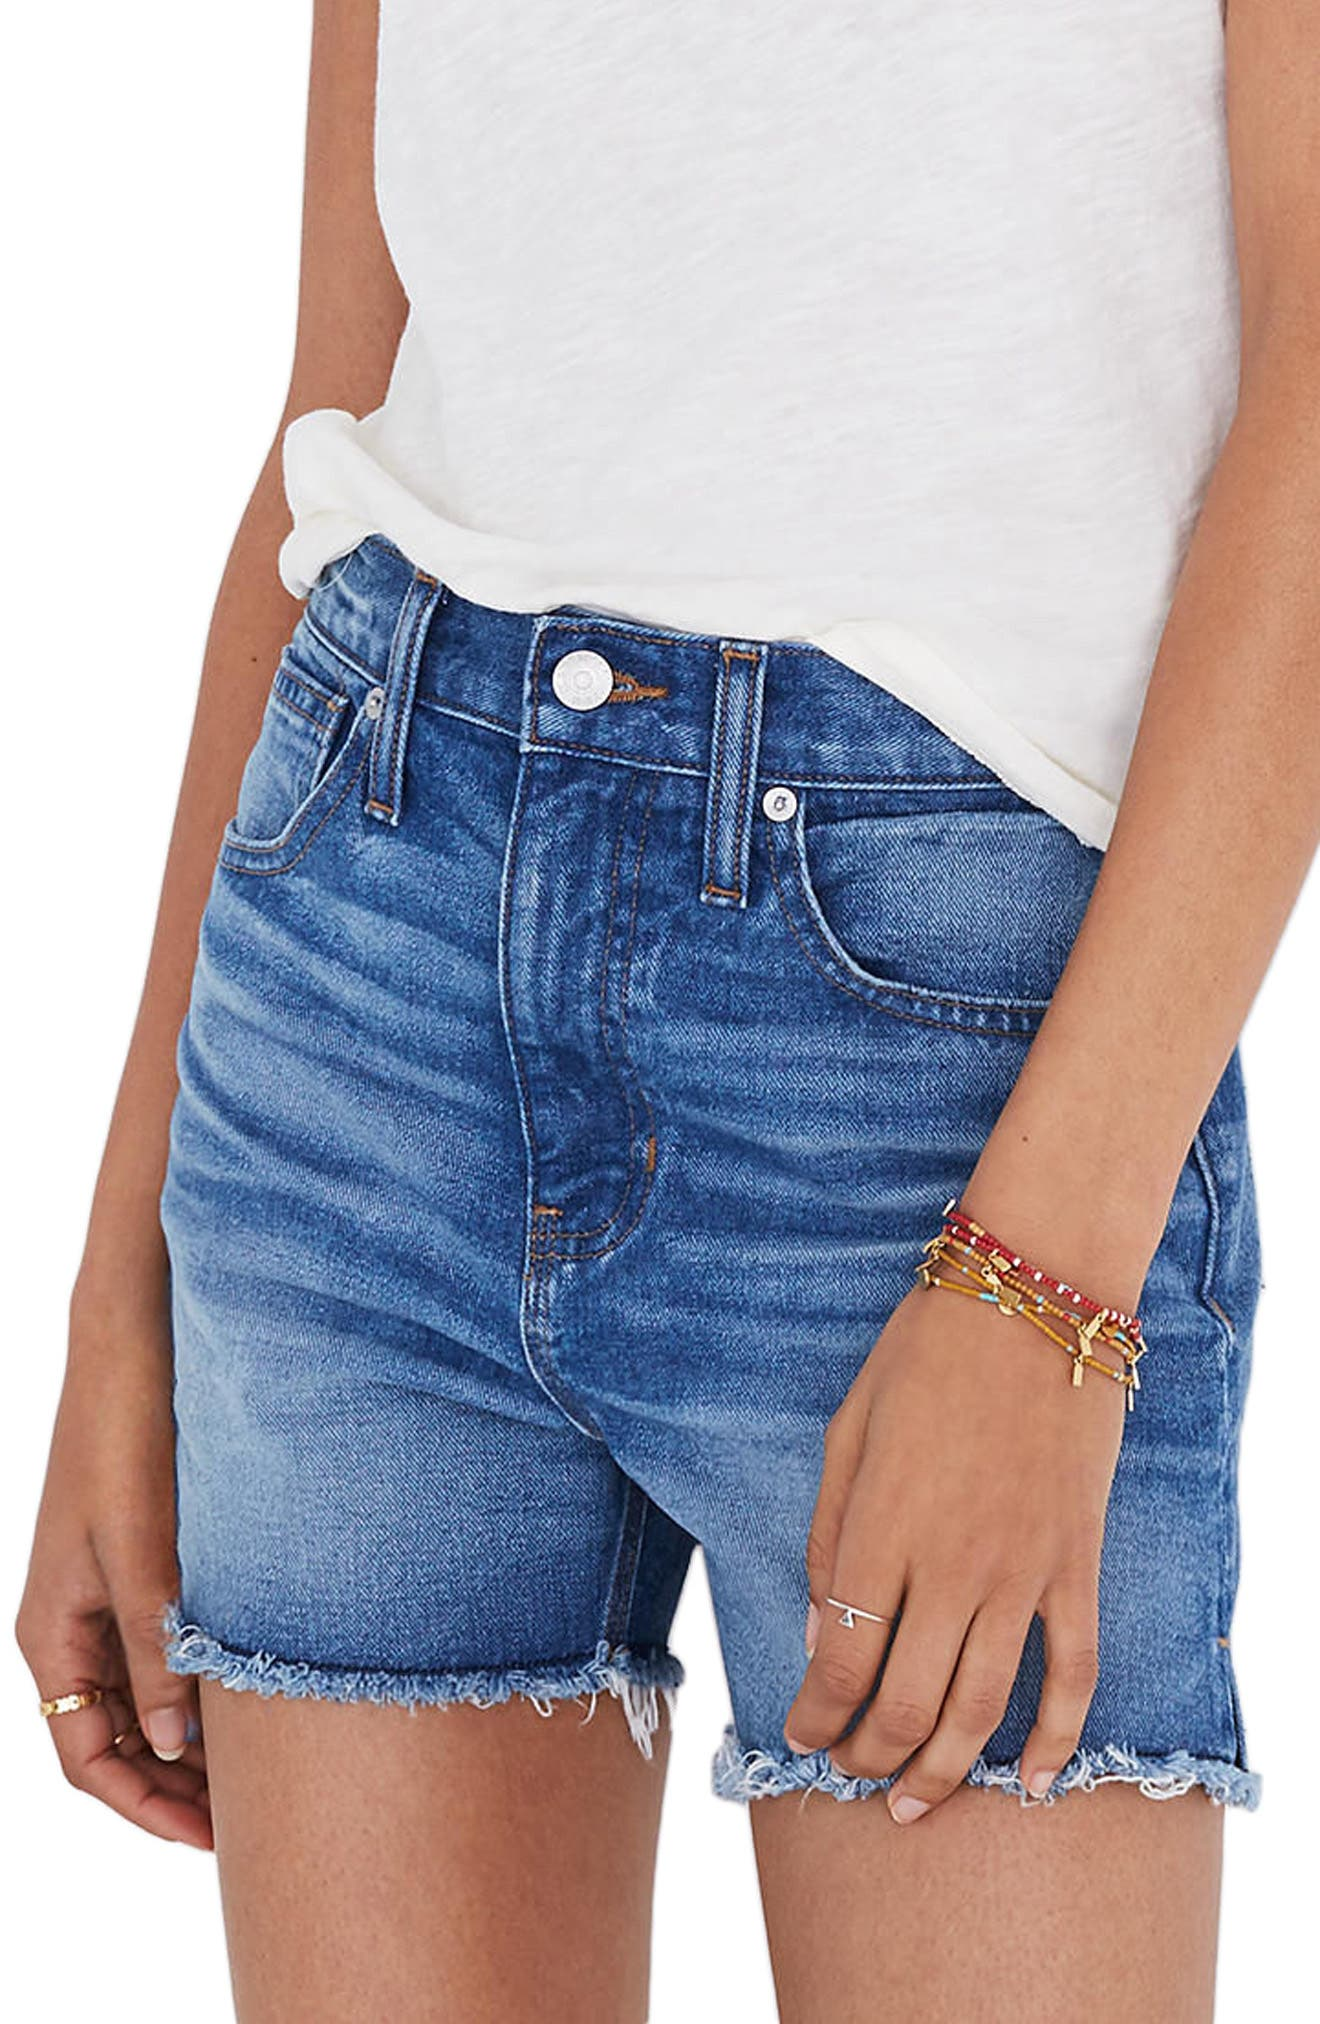 Alternate Image 1 Selected - Madewell The Perfect Jean Shorts (Butler)